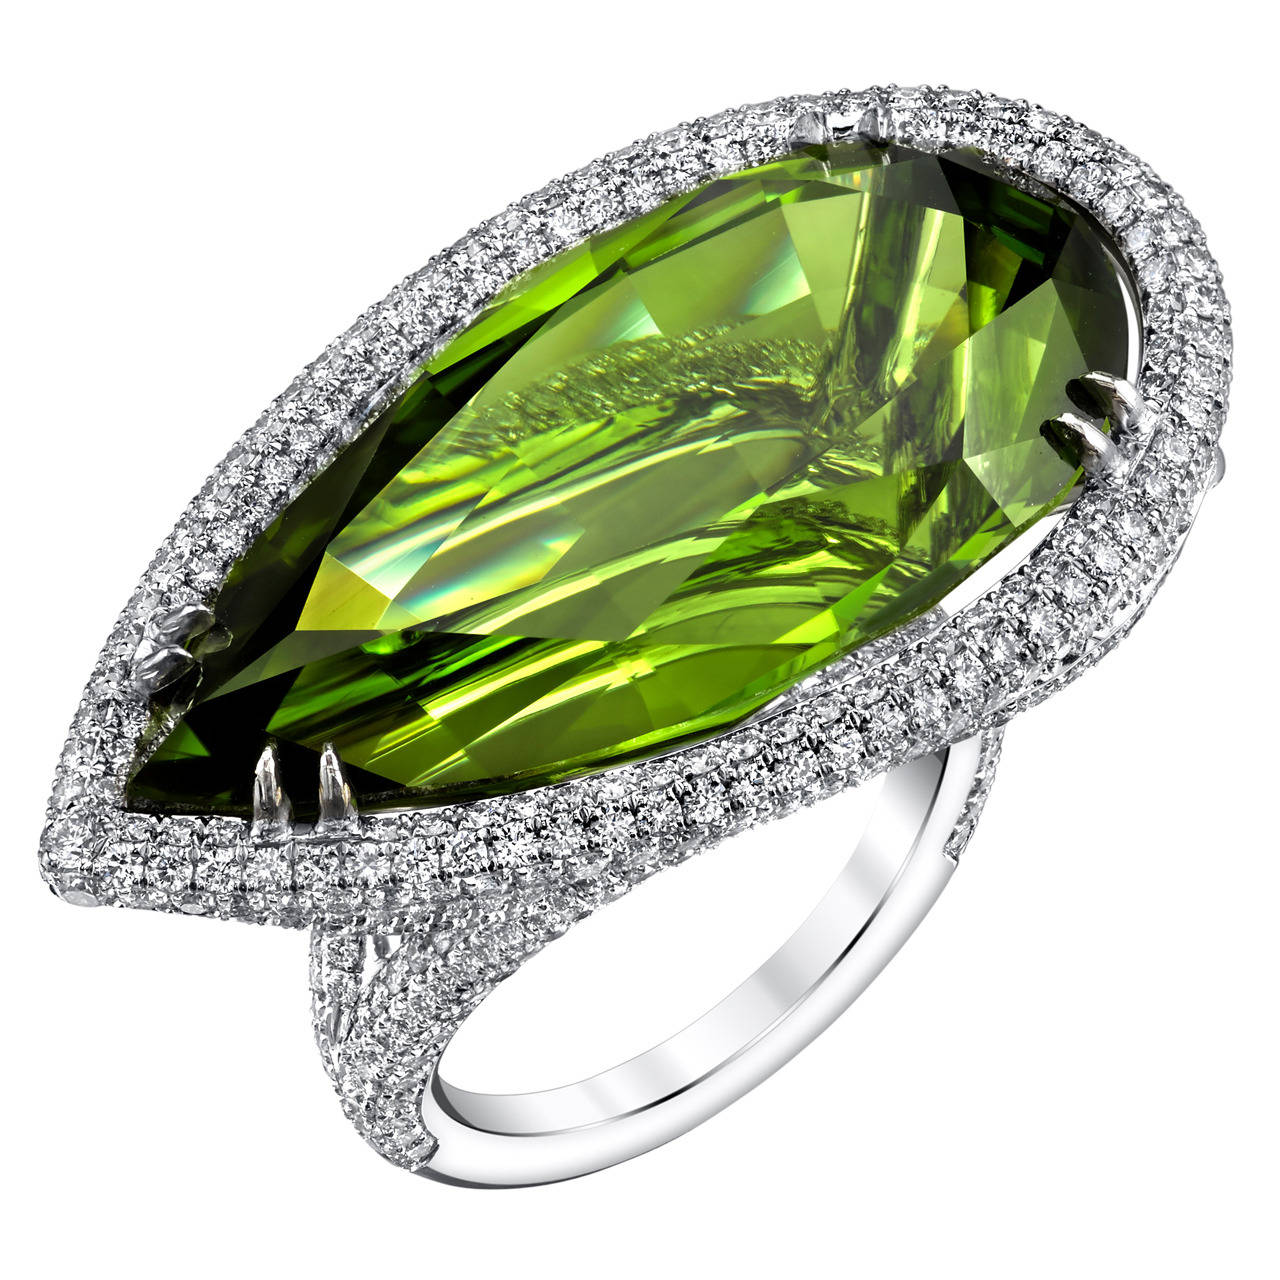 Pear Shaped Pakistani Peridot set in 18 Karat White Gold, accented with Micro Pave Ideal Cut White Diamonds. GIA Certified Center Stone with a Total Weight of 44.30CT. White Diamond Quality G/VS2 with a Total Weight of 4CT.